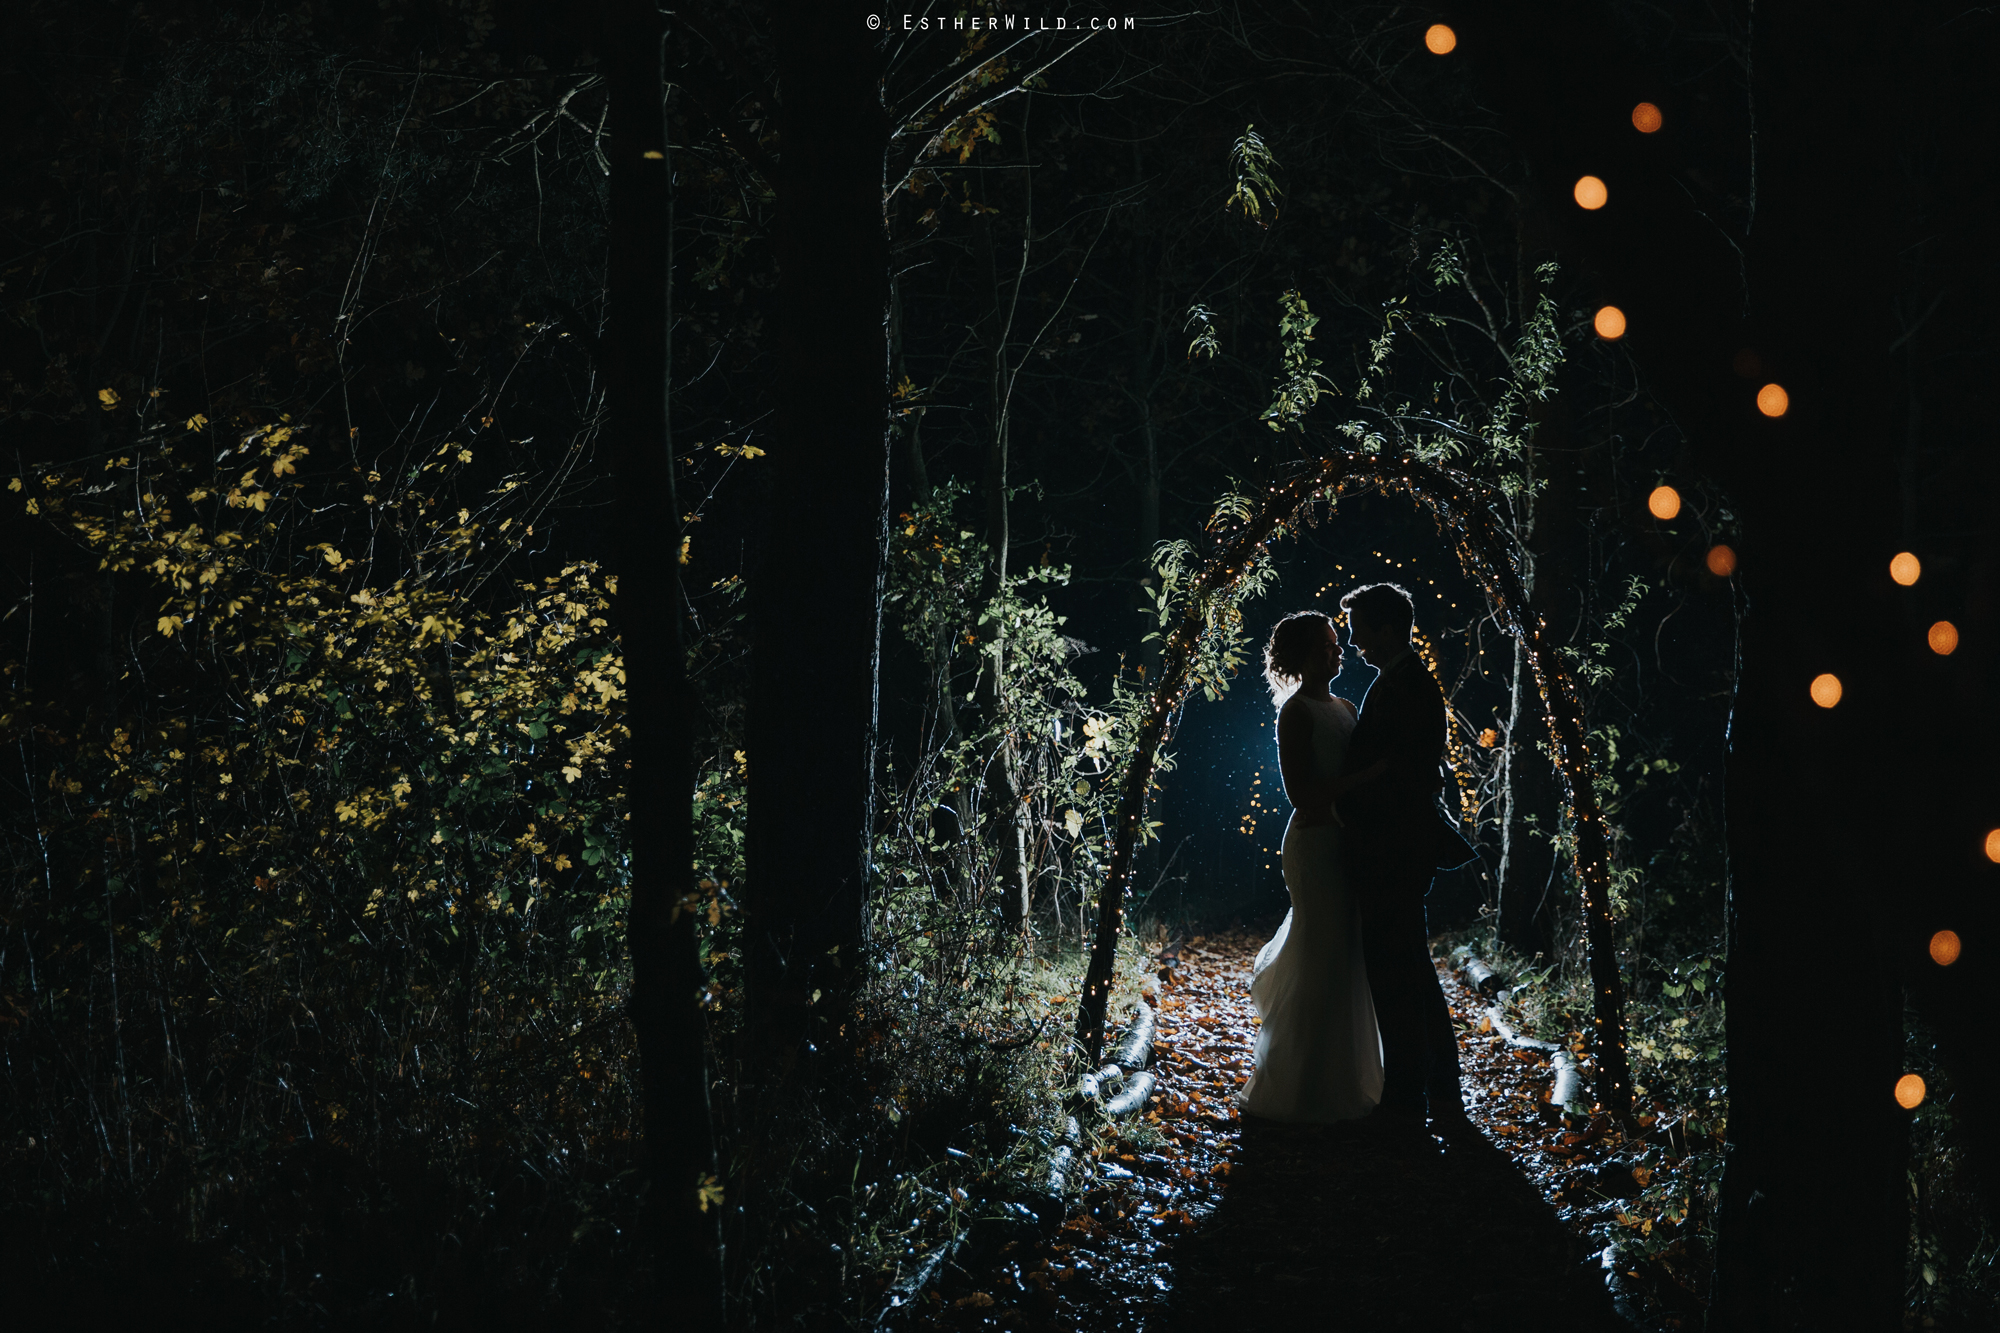 Wedding_Photographer_Chaucer_Barn_Holt_Norfolk_Country_Rustic_Venue_Copyright_Esther_Wild_IMG_2538.jpg